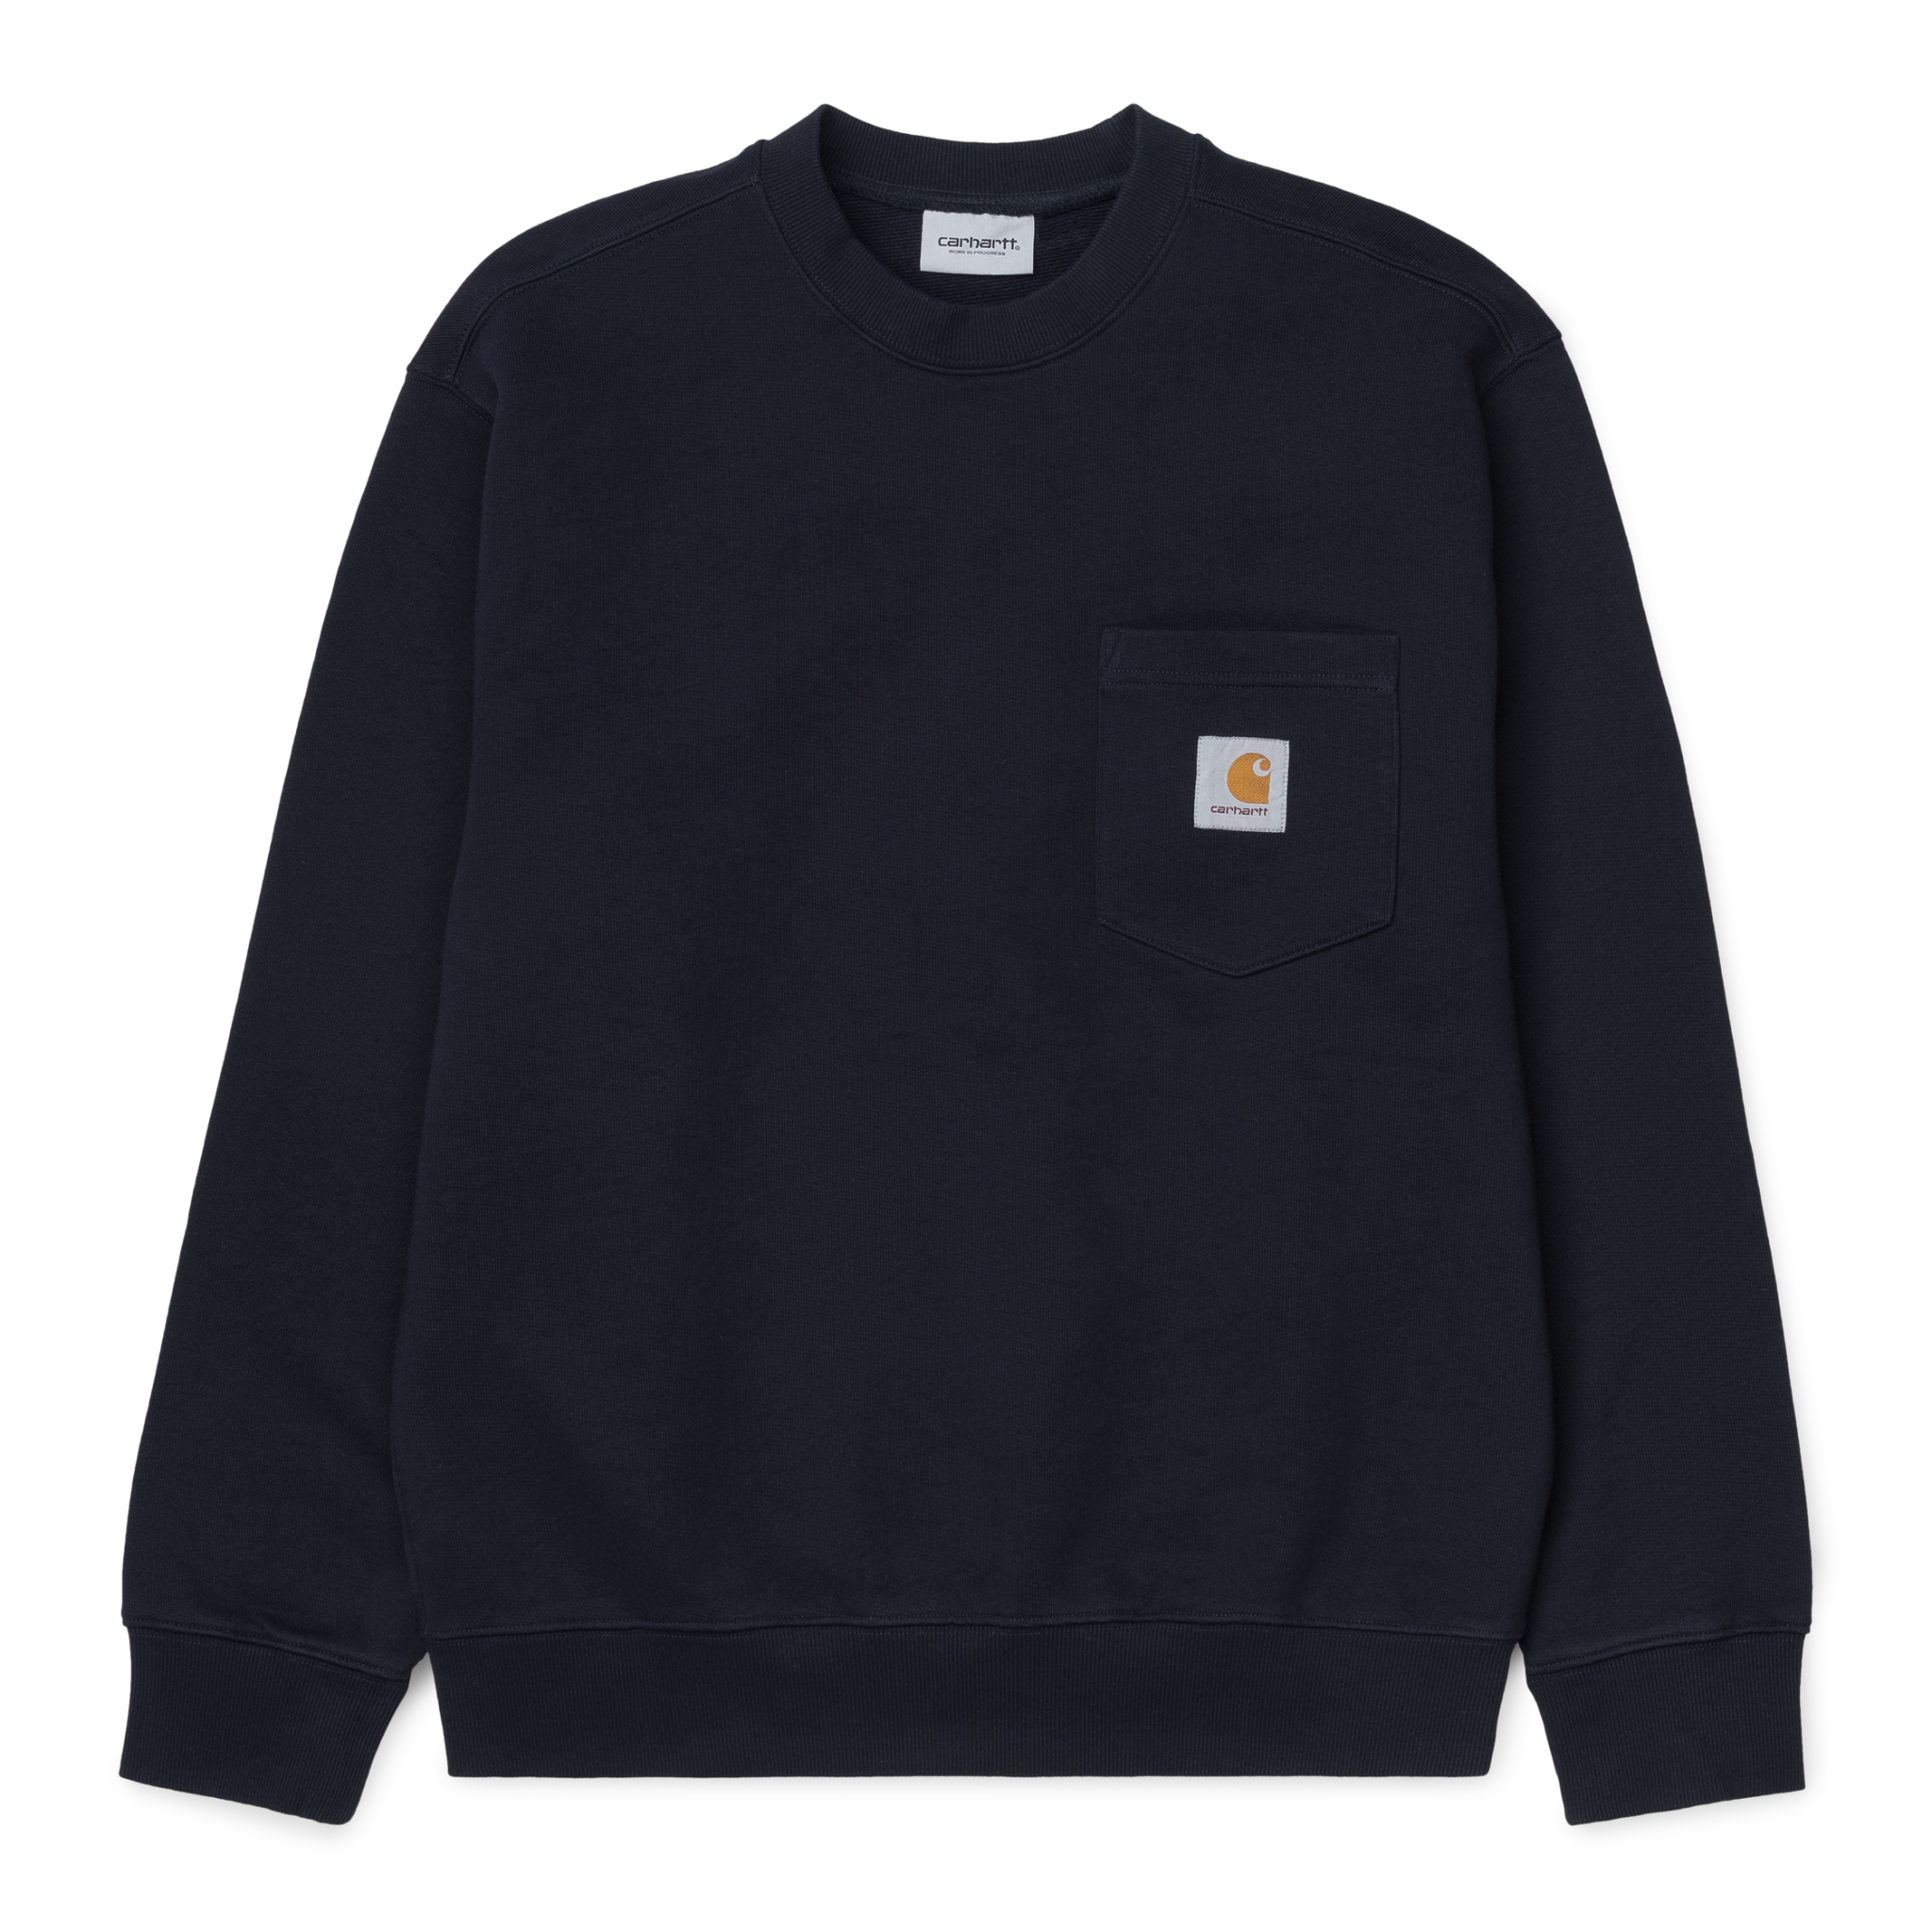 Carhartt Work In Progress Pocket Crewneck Sweatshirt in Dark Navy